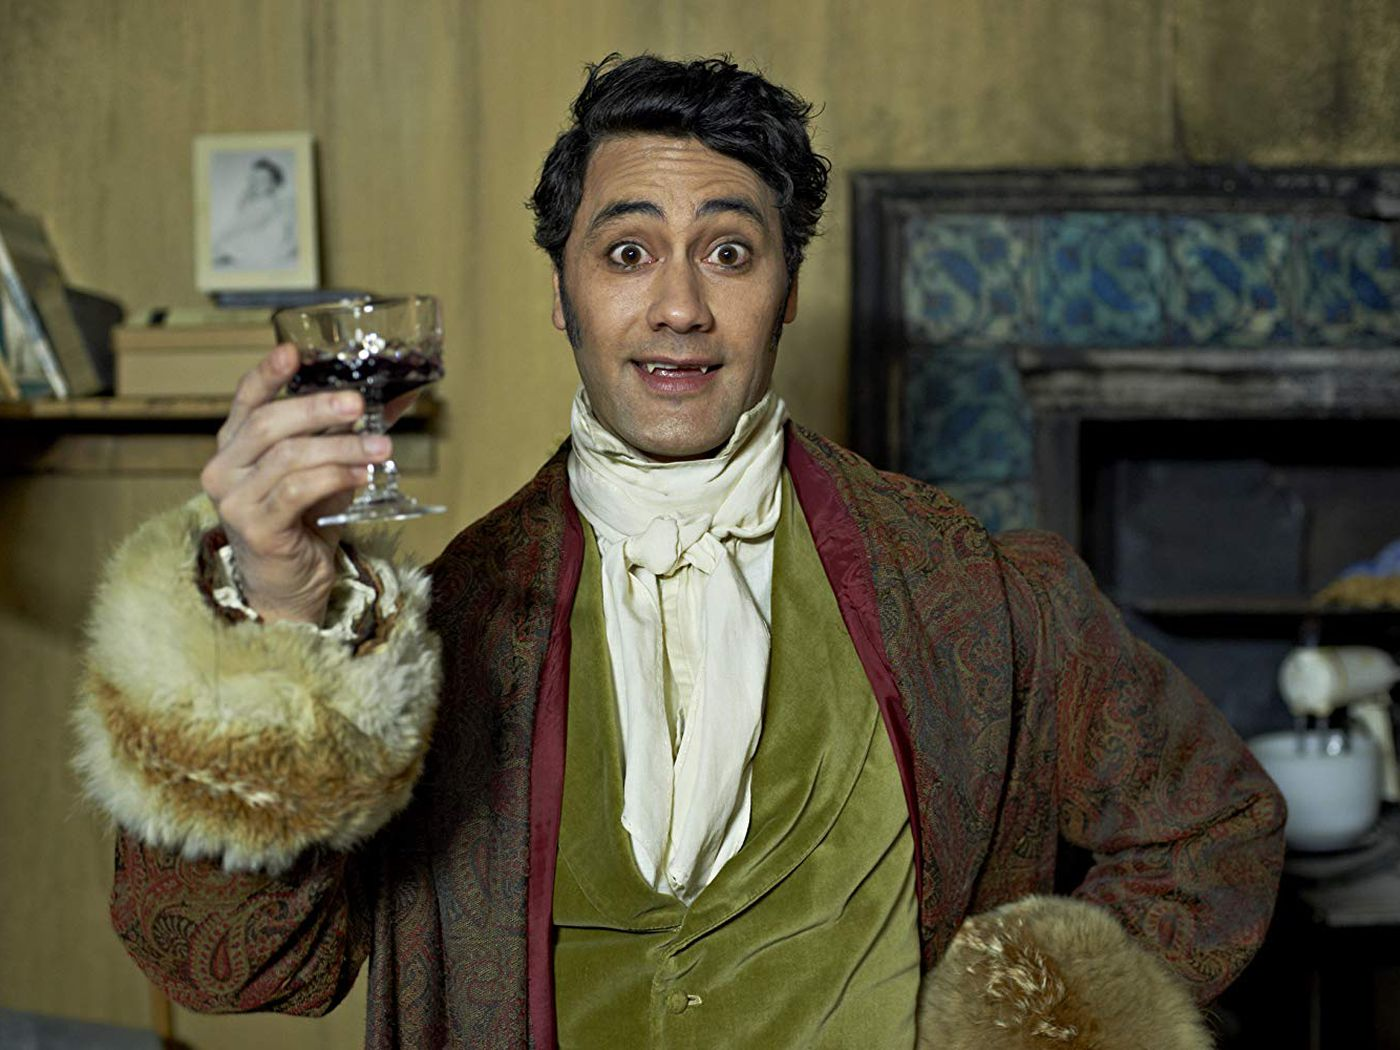 What We Do In The Shadows New Fx Comedy Is A Cult Internet